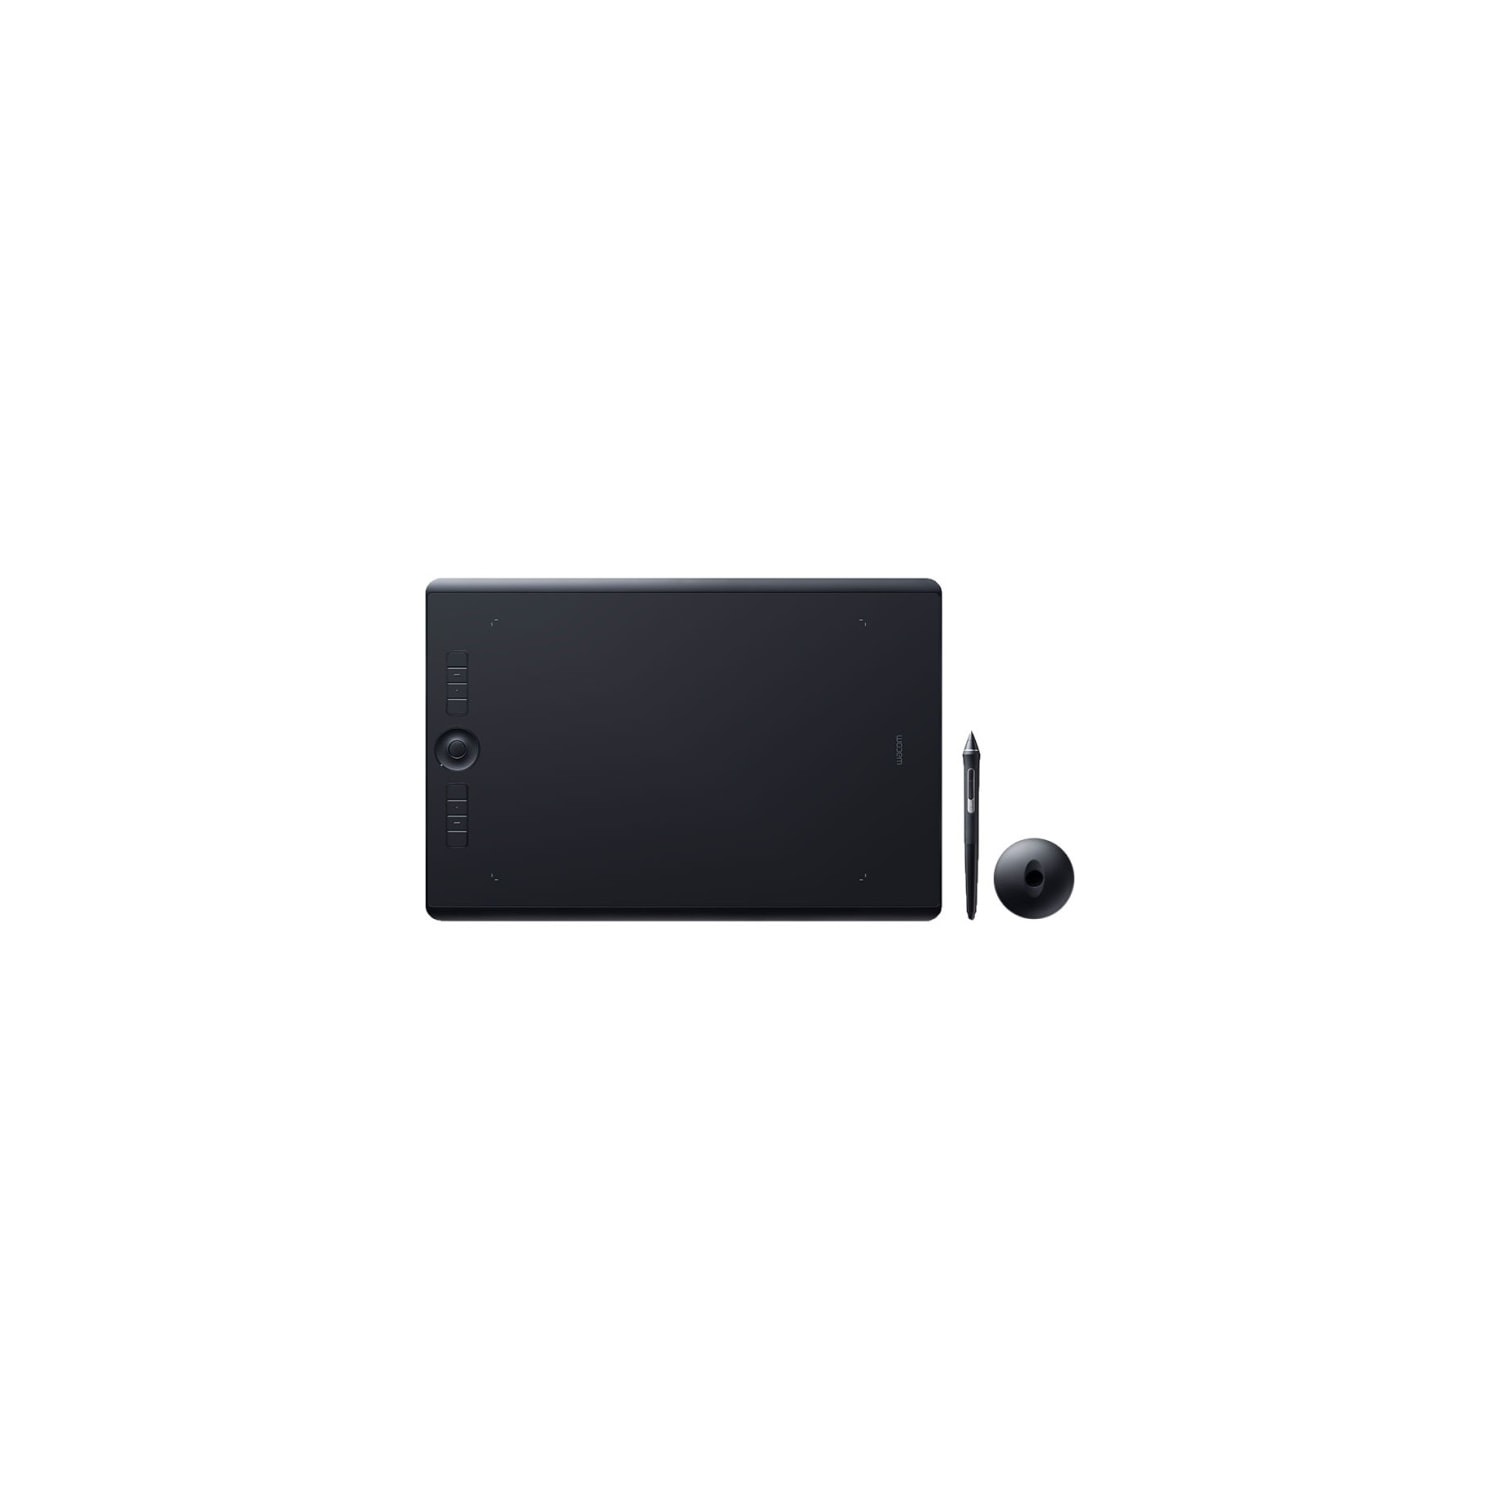 Wacom Intuos Pro PTH-660 Graphics Tablet - 5080 lpi - Touchscreen -  Multi-touch Screen - Wired/Wireless - Black